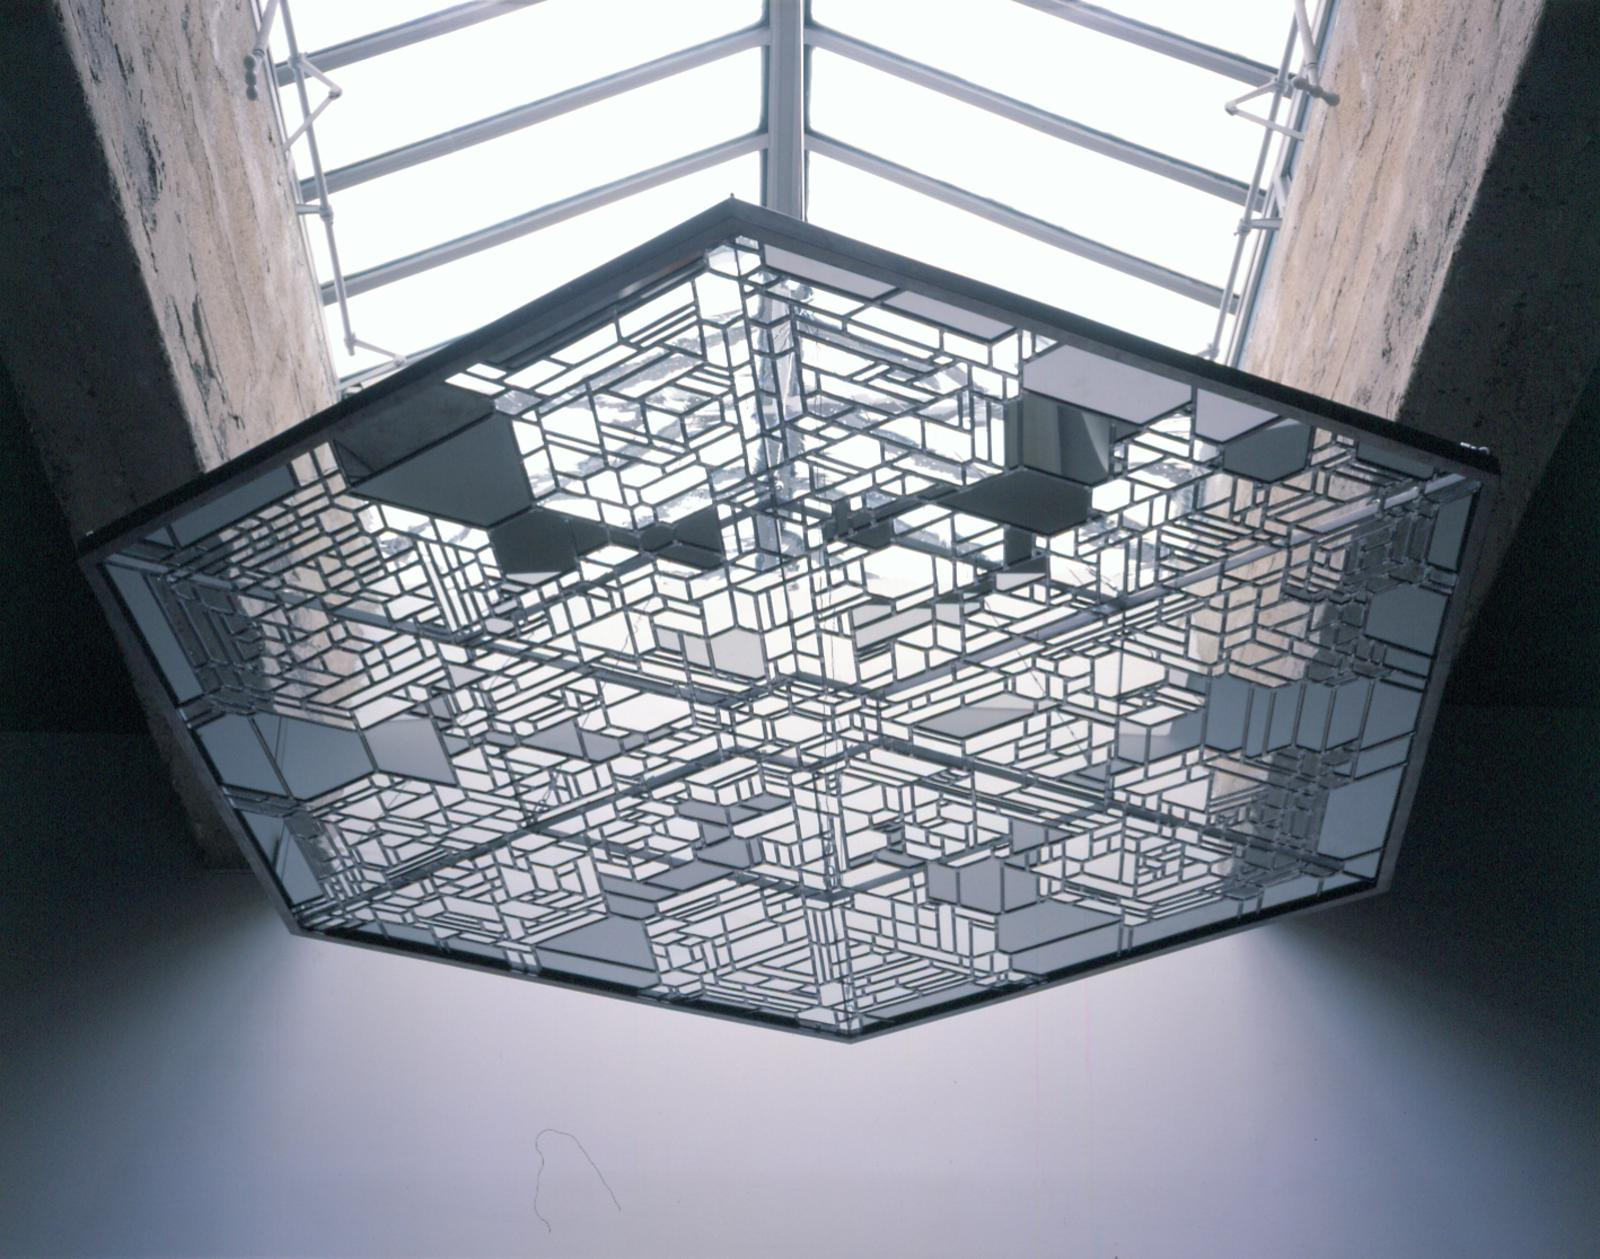 stainless steel kitchen modern window treatments snow crystal roof • artwork studio olafur eliasson